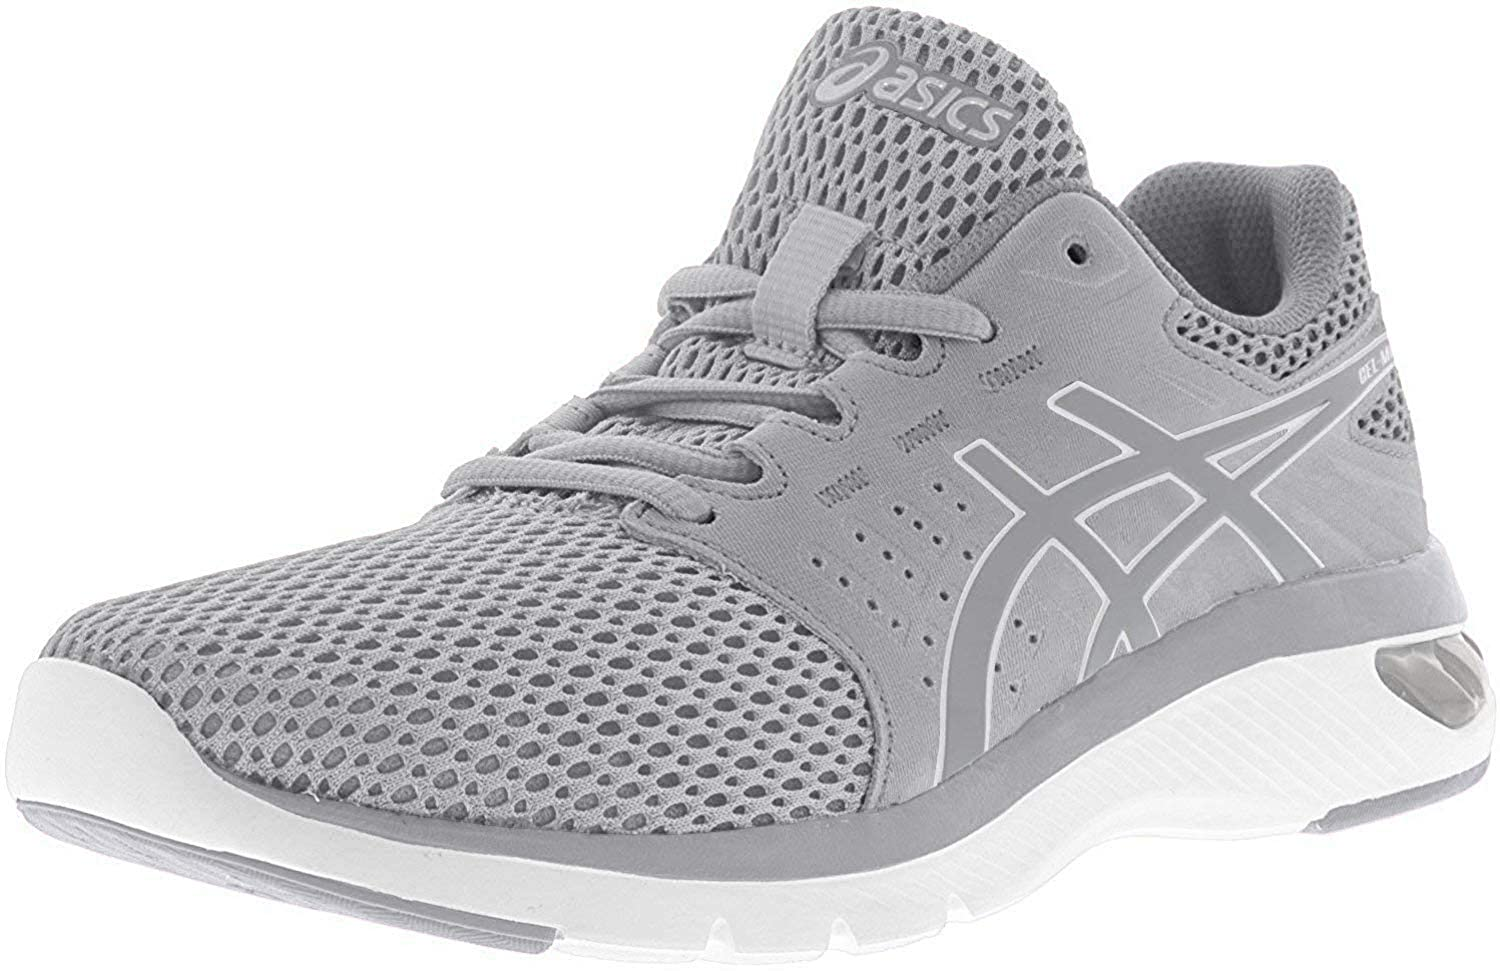 ASICS Womens Gel-Moya Trainers Lightweight Running Shoes